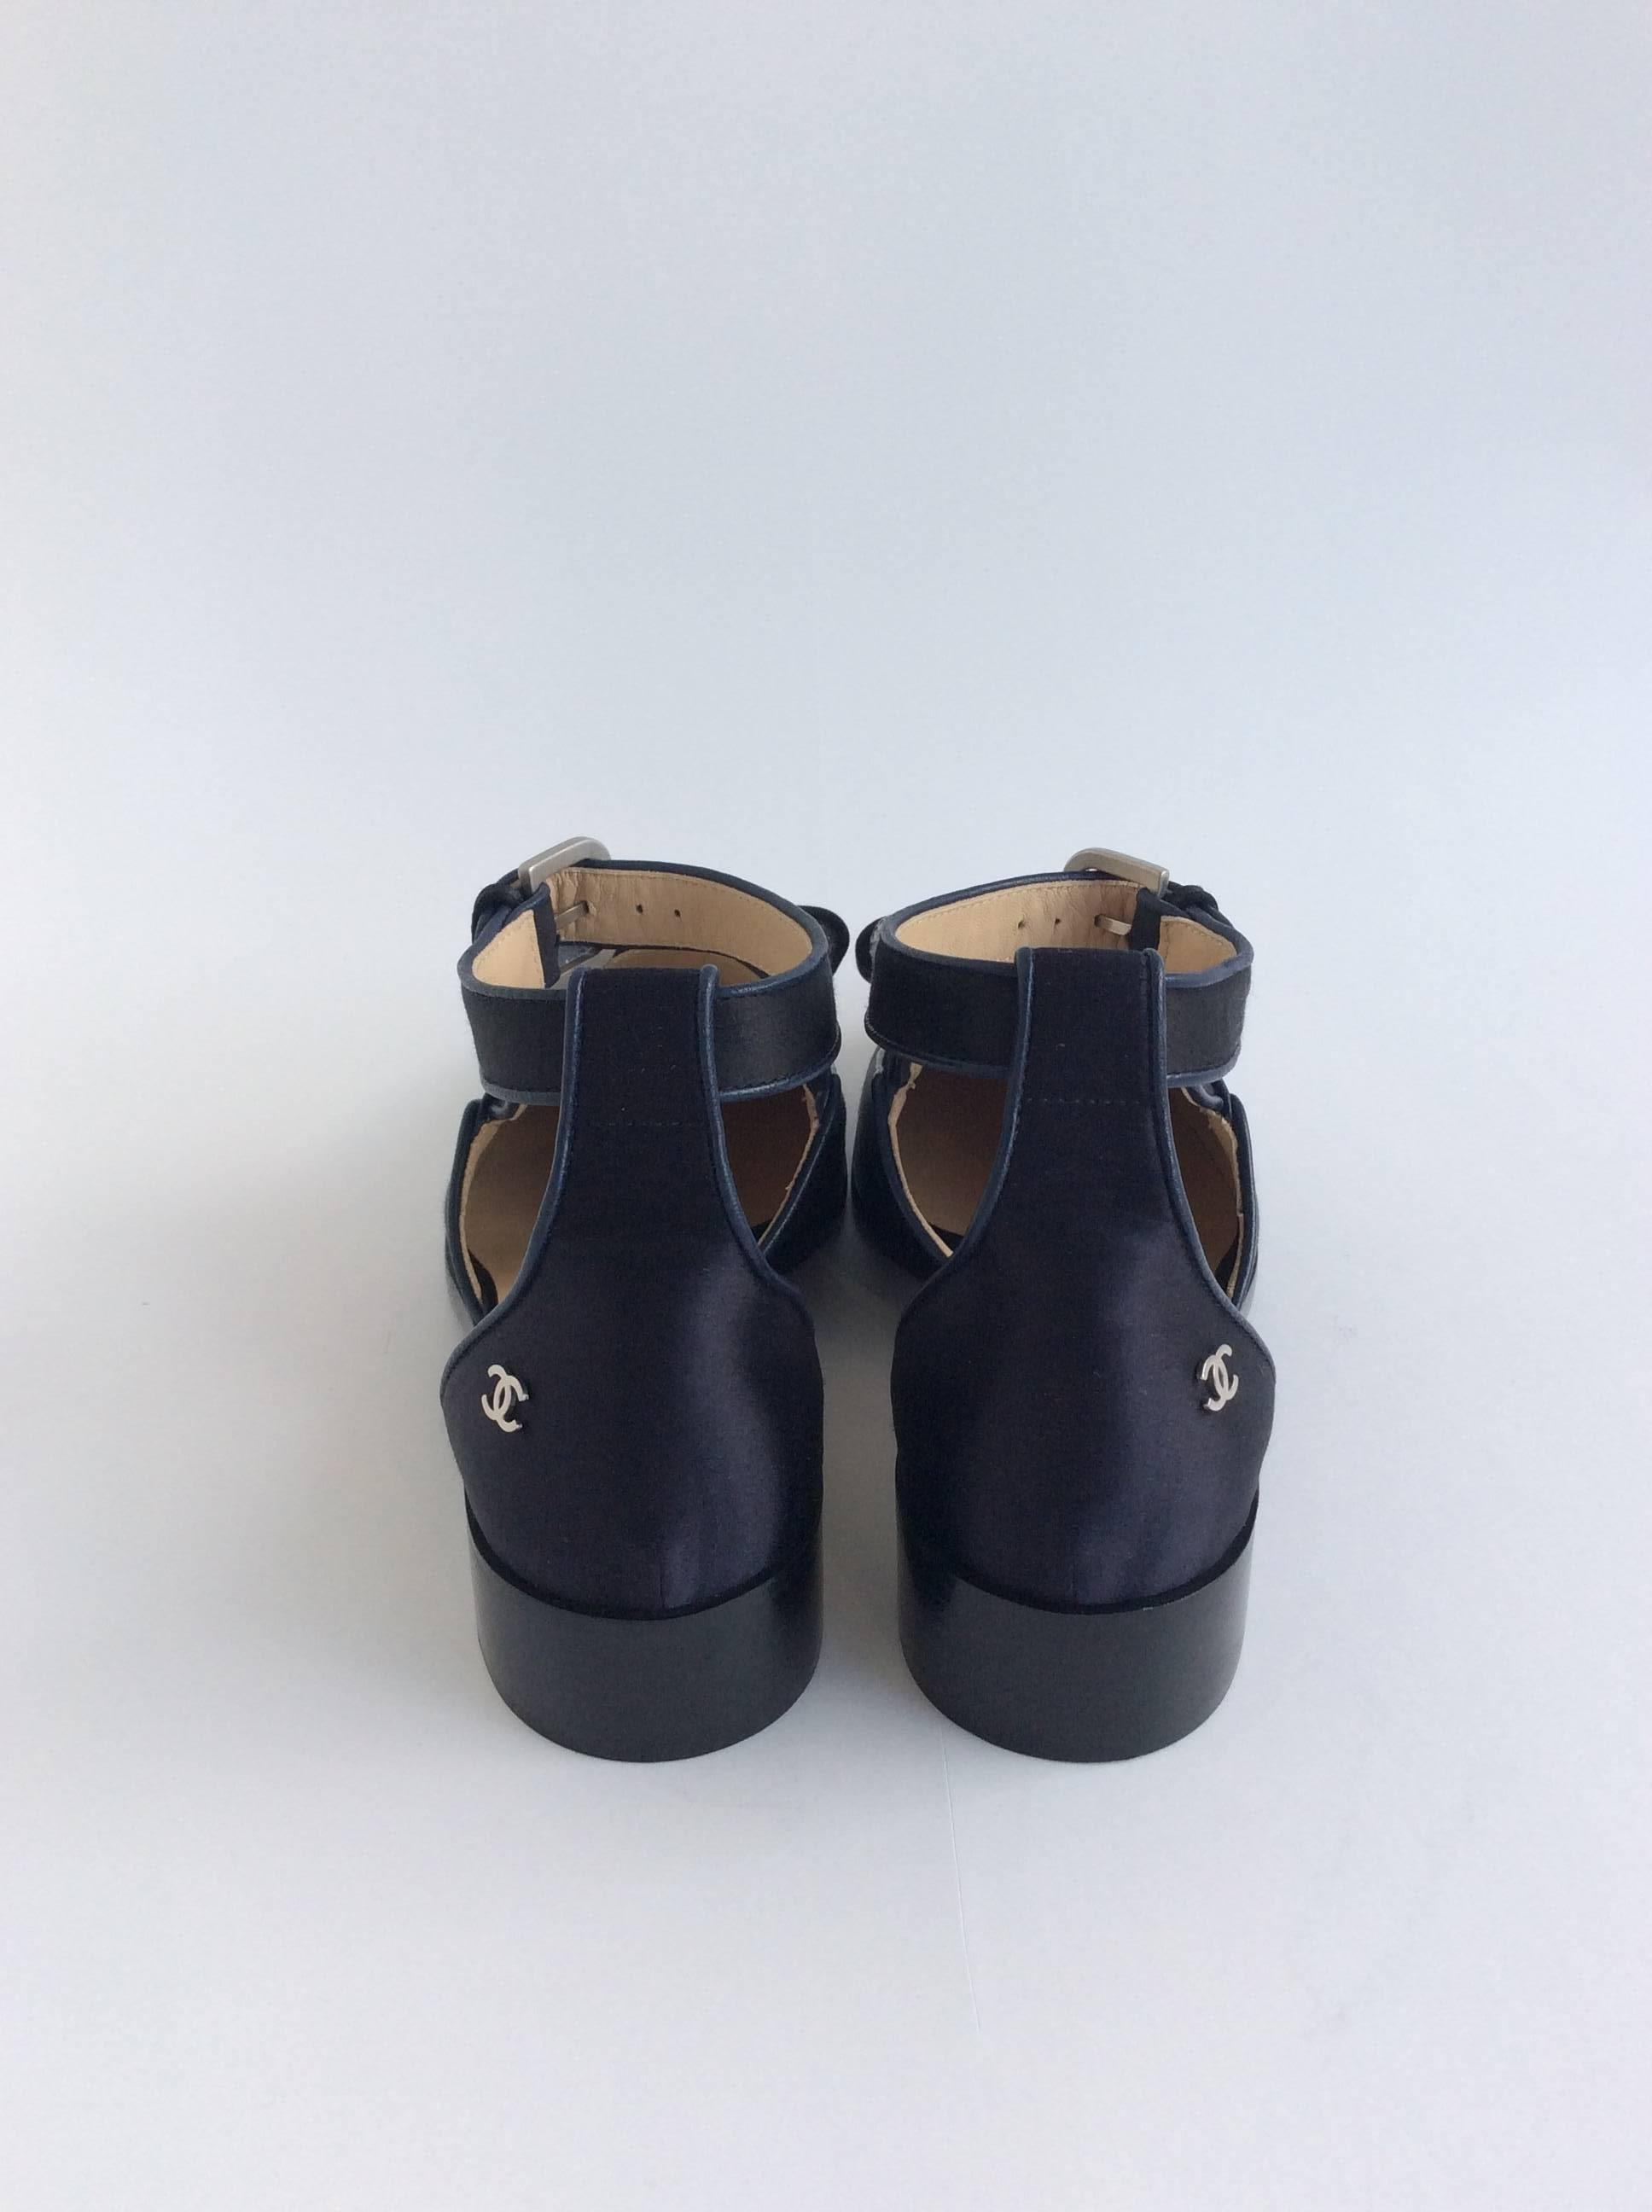 d52224dab3a Chanel Black and Navy Satin Sandals With Grosgrain Bows at 1stdibs